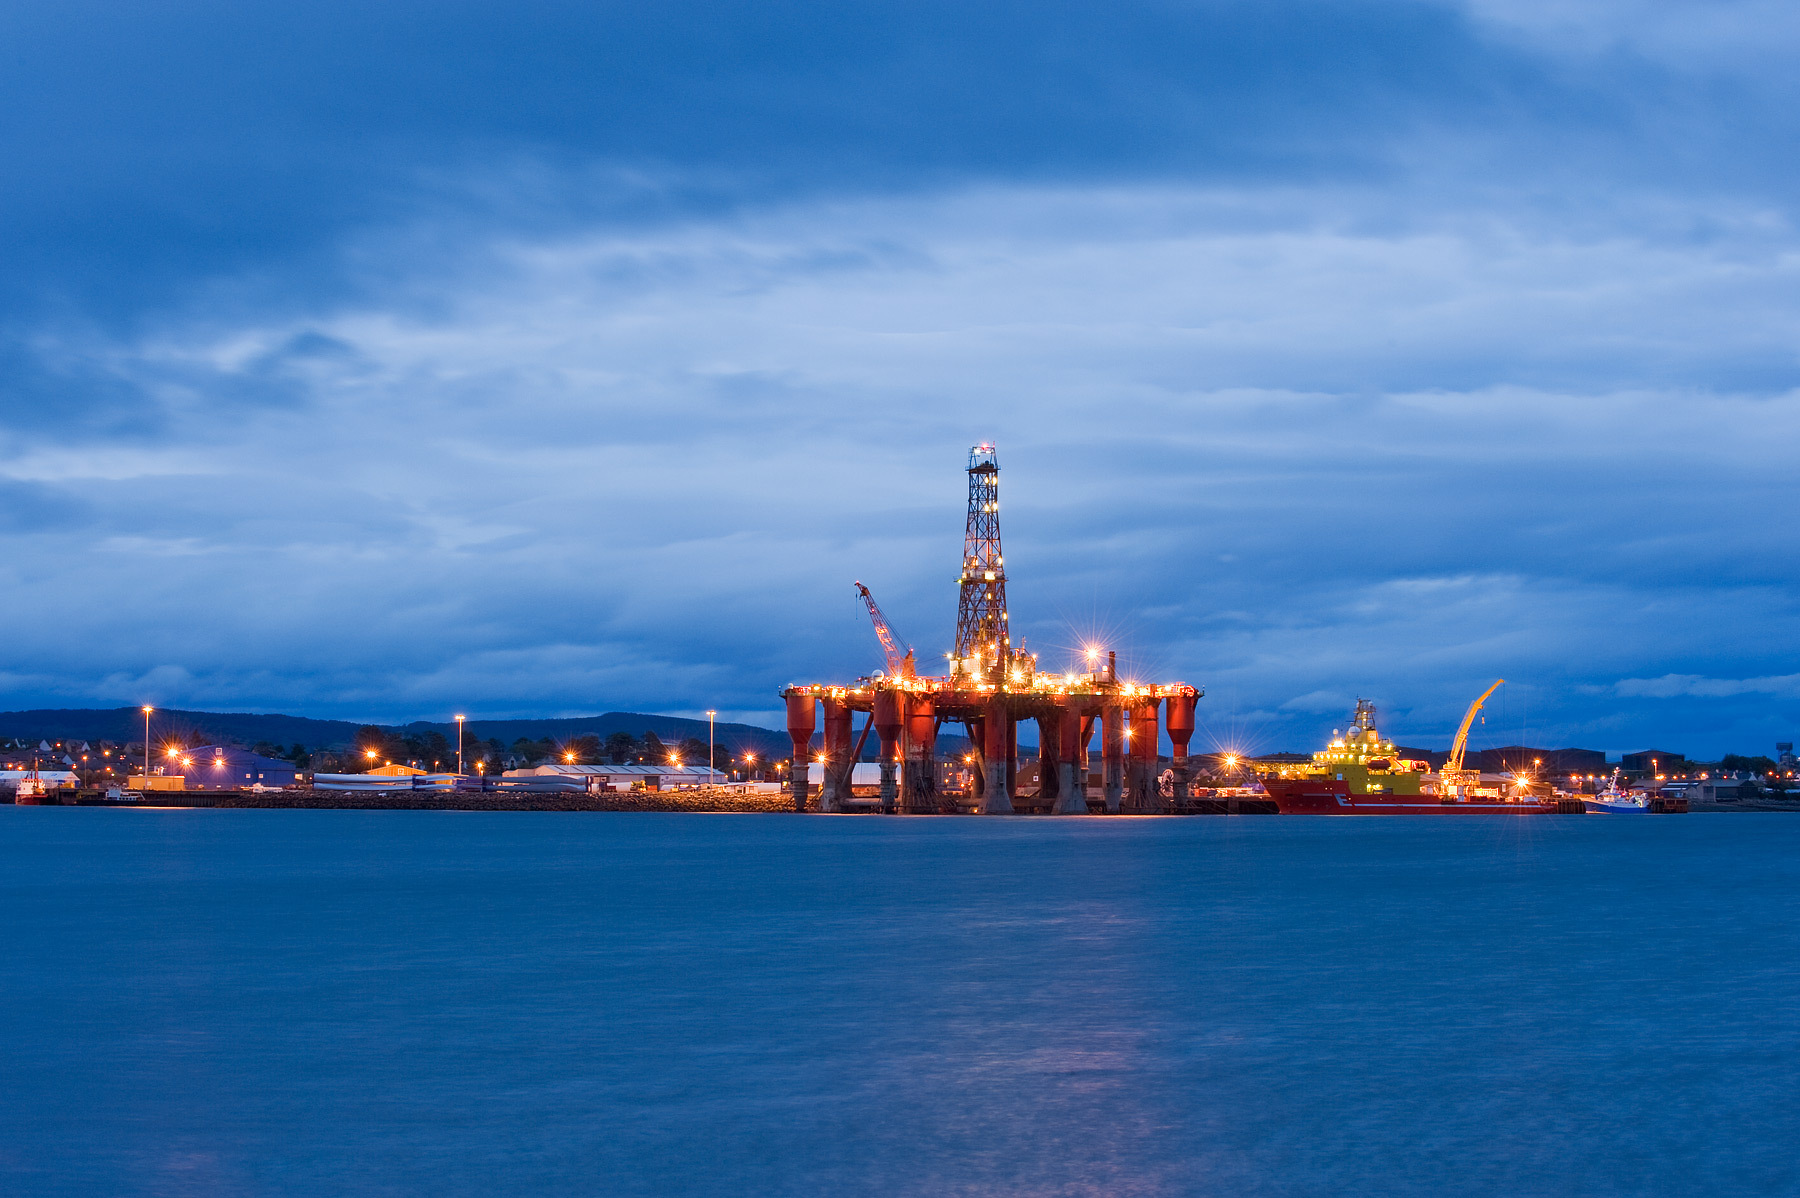 Oil_rigs_North_Sea_oil_Scotland_UK